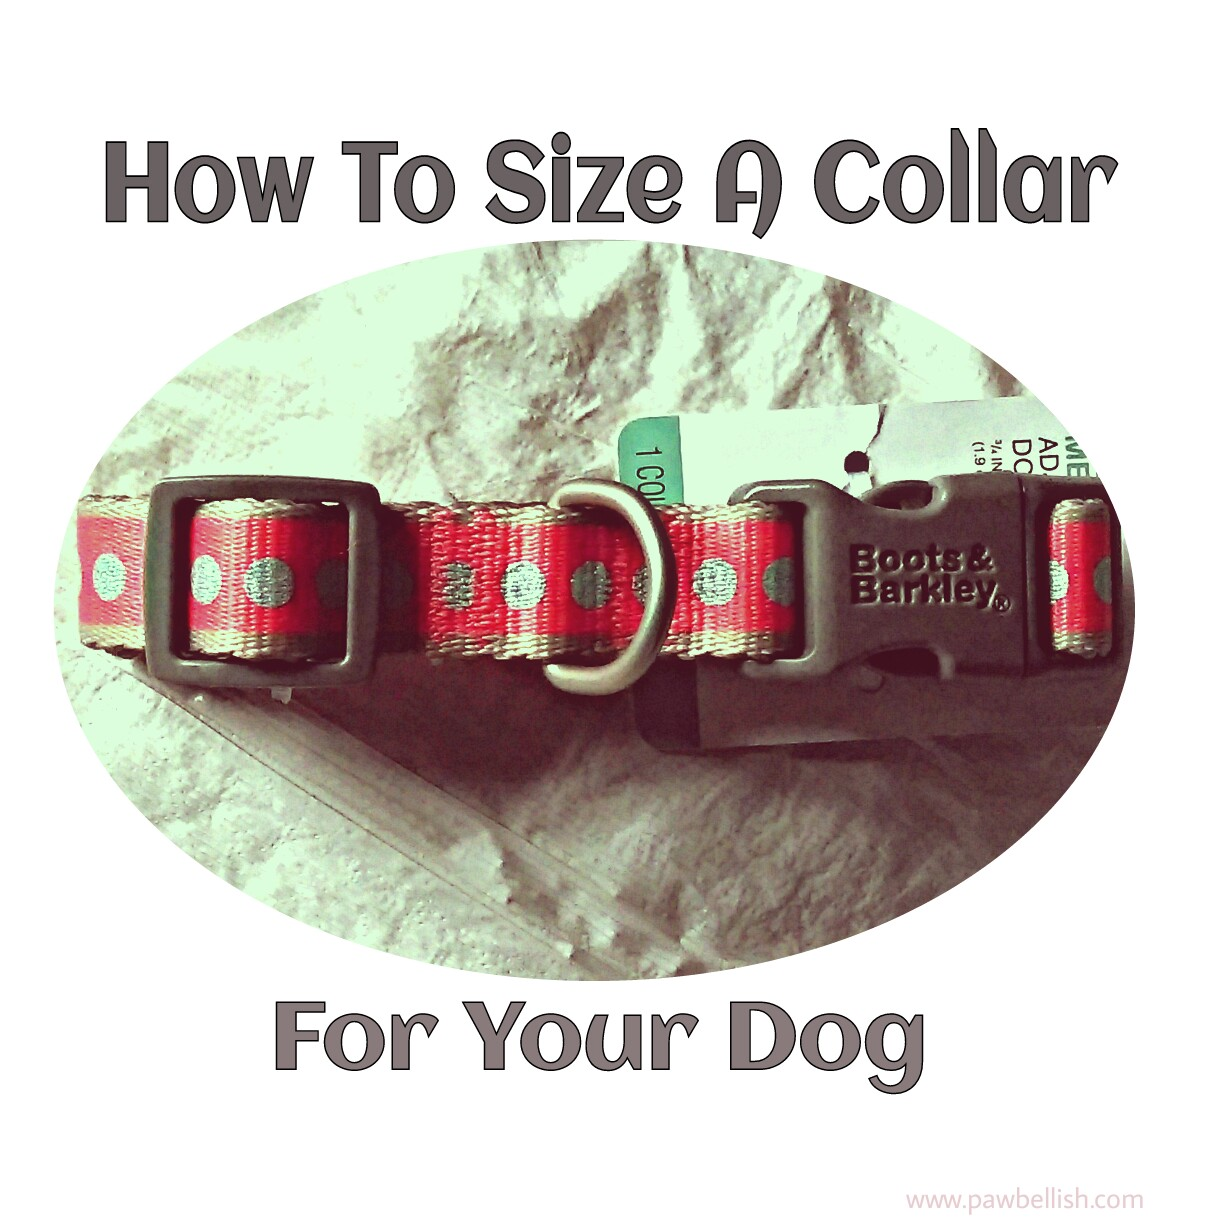 Picture of a snap style dog collar